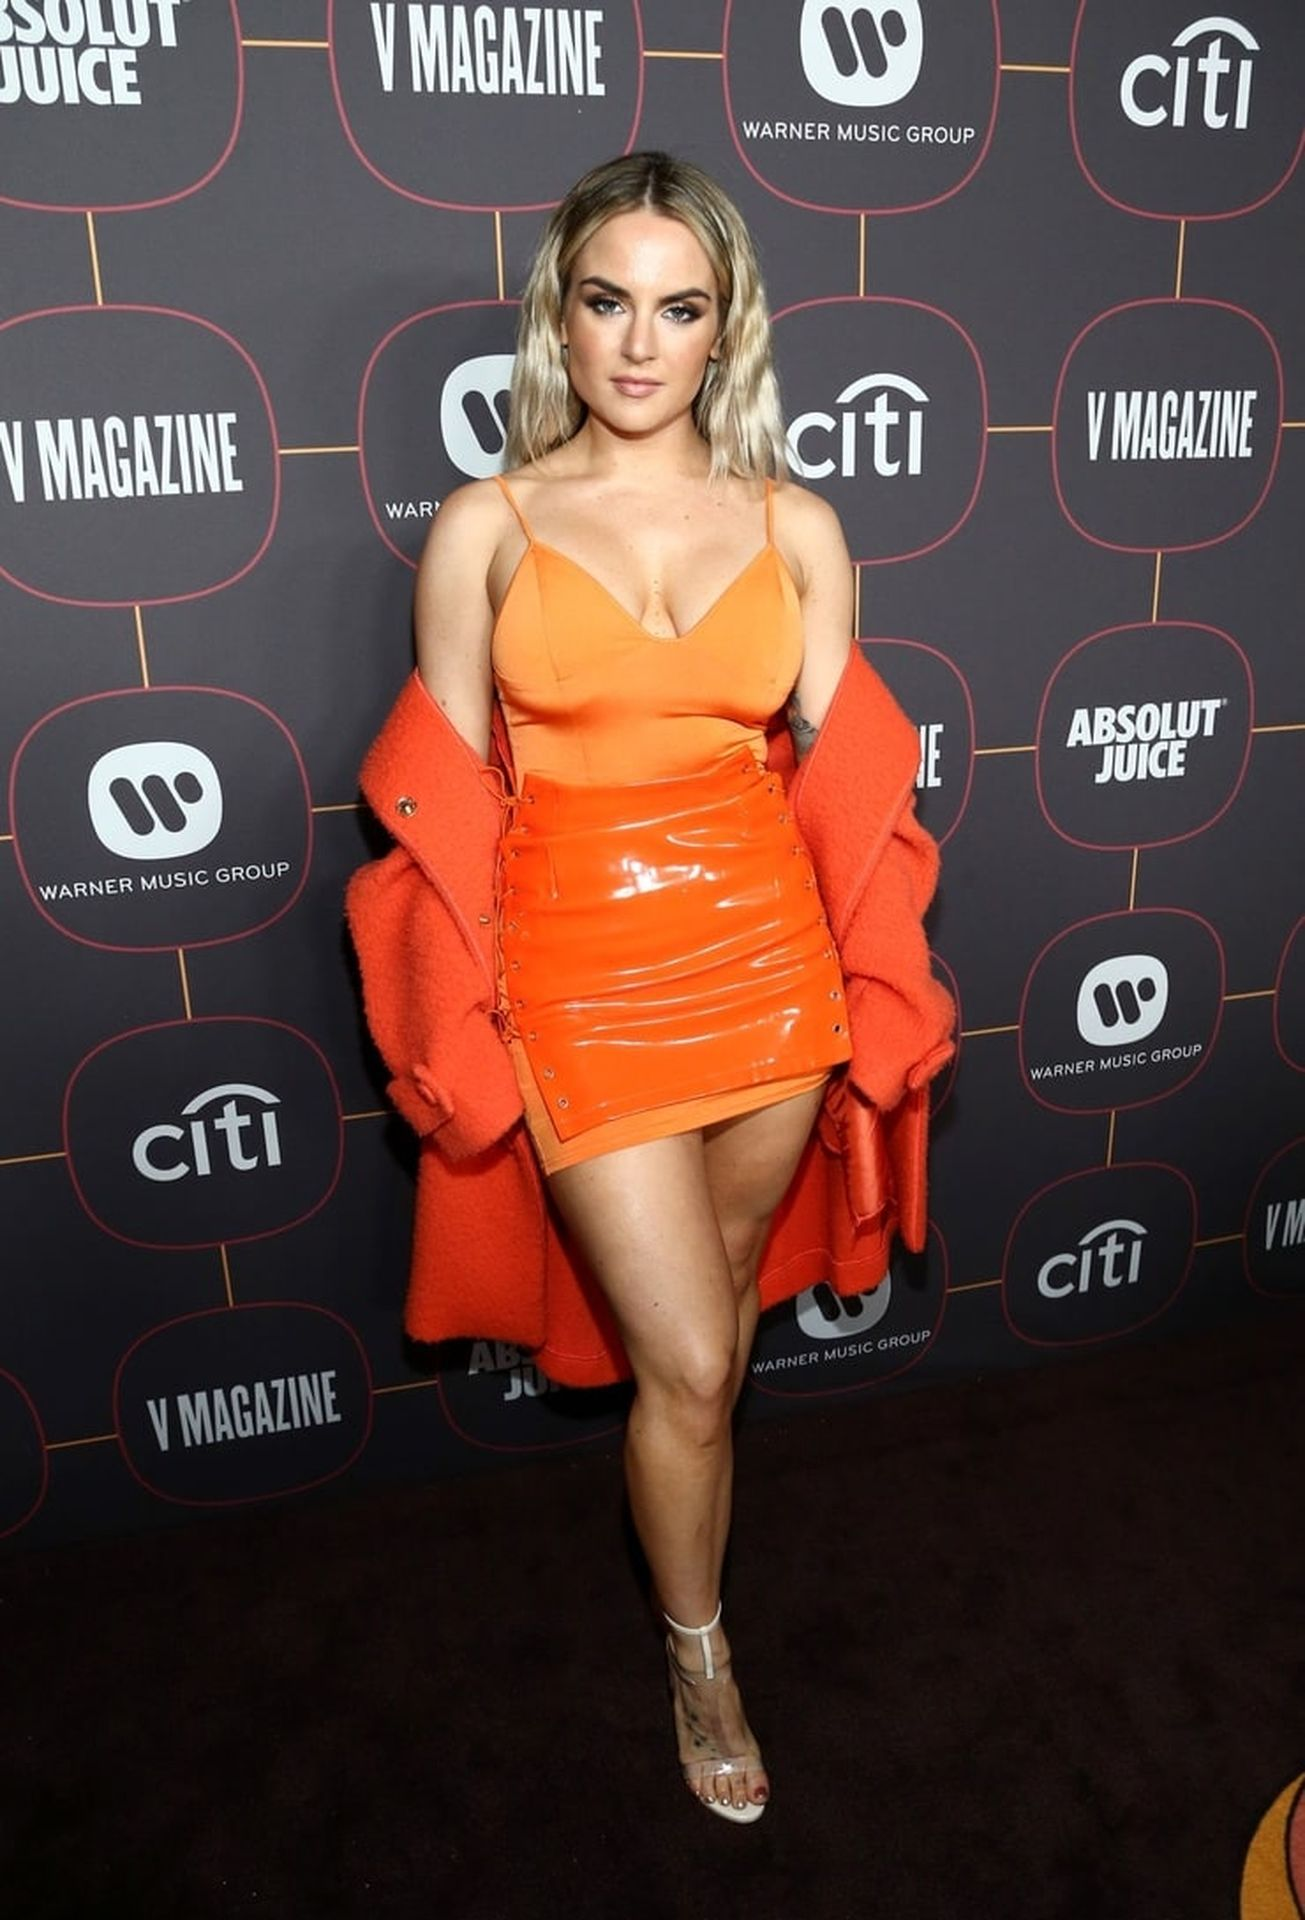 Jojo Shows Off Her Tits At The Warner Music Group Pre Grammy Party In Hollywood 0001